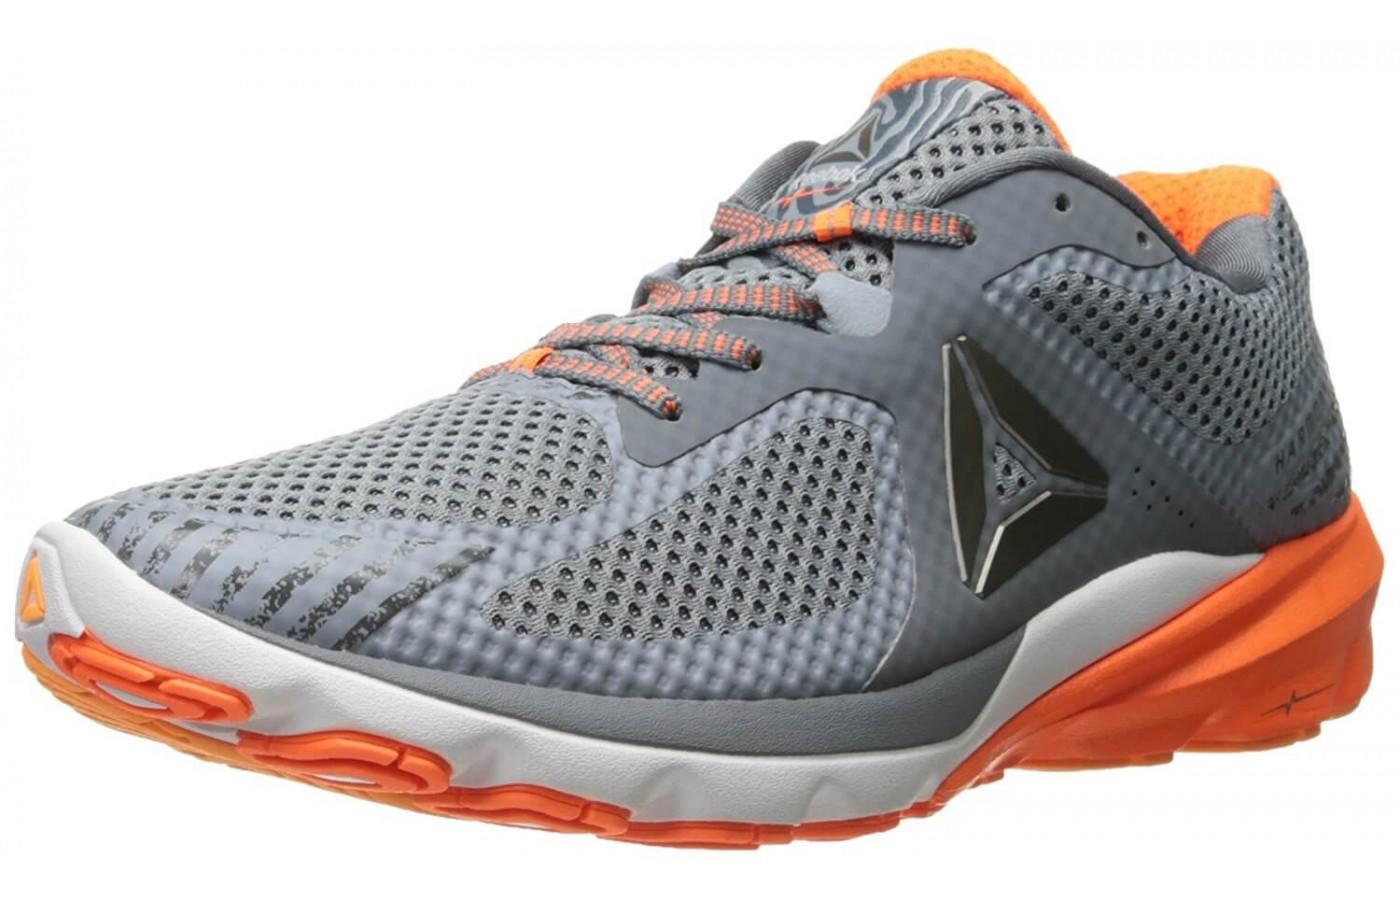 006985706 the Reebok Harmony Road is a dynamic high-performance trainer ...